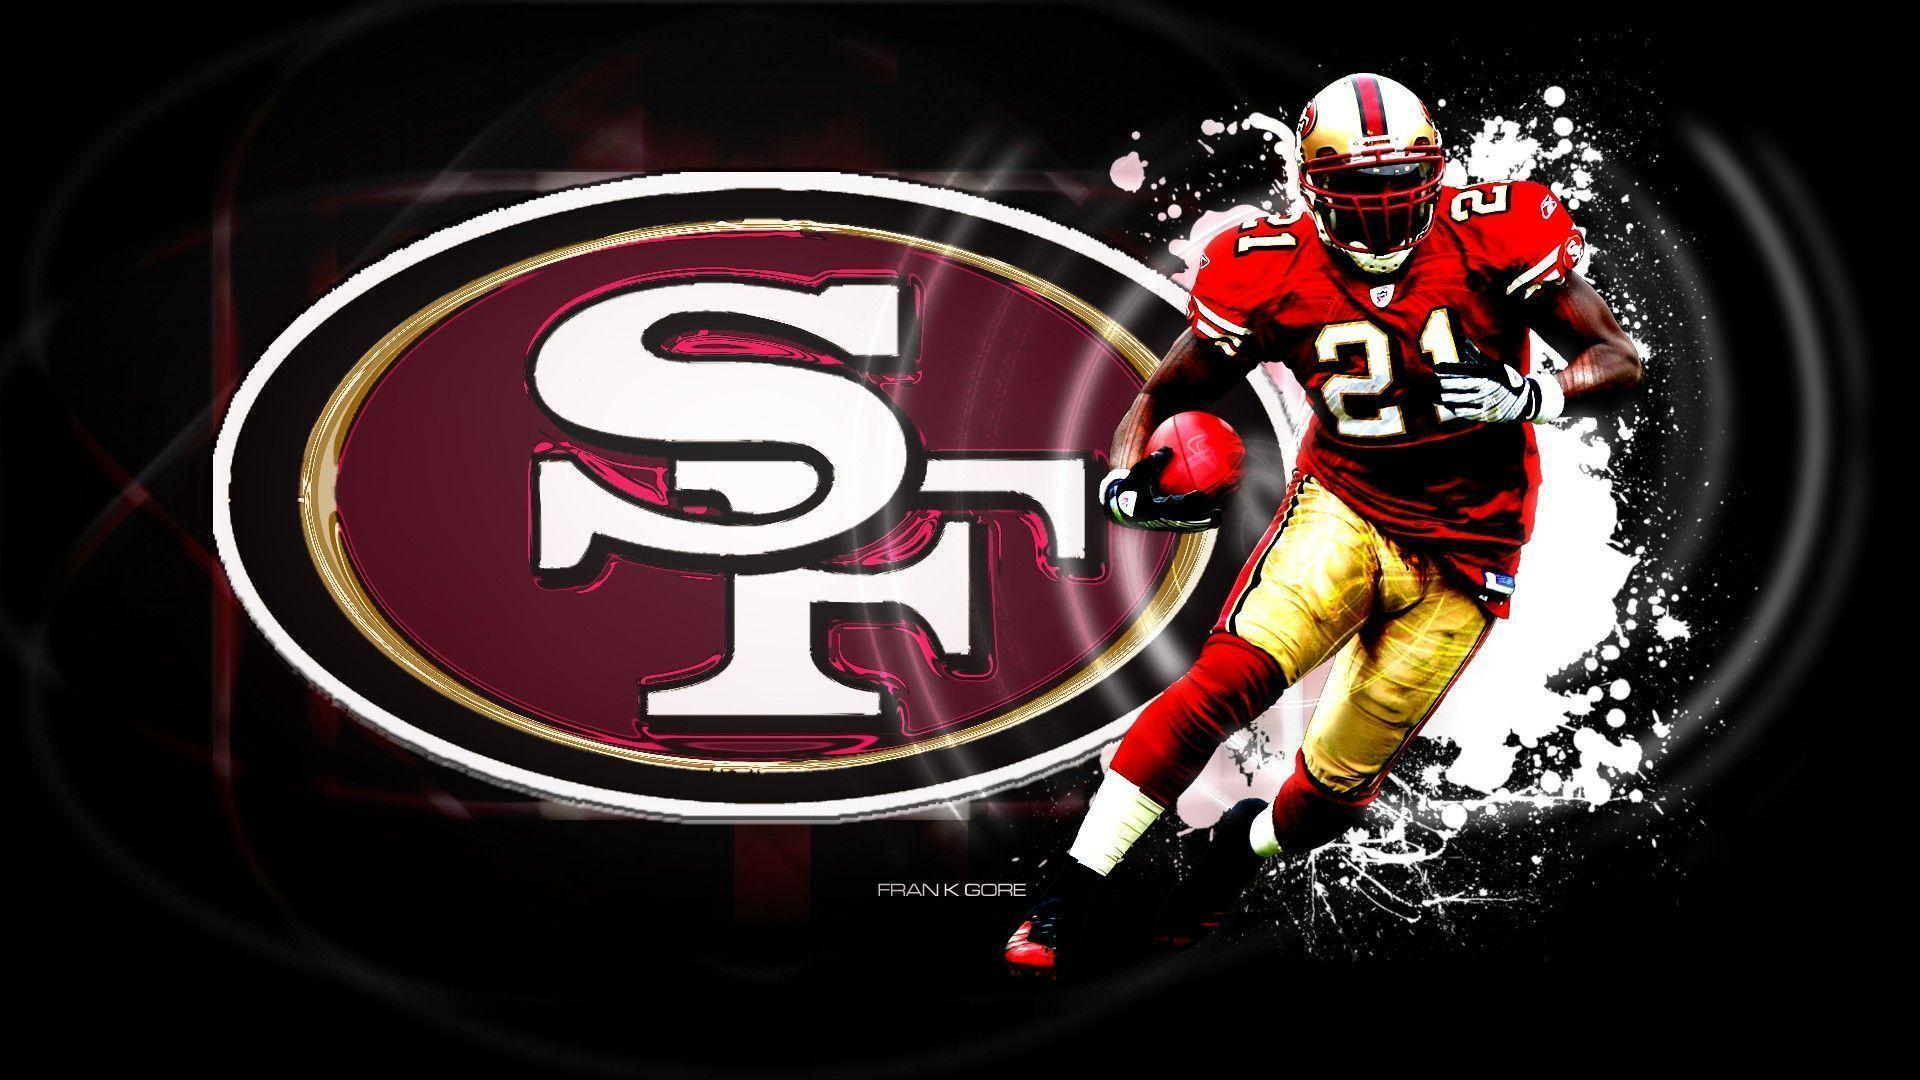 San Francisco 49ers Full HQ Images | HD Wallpapers